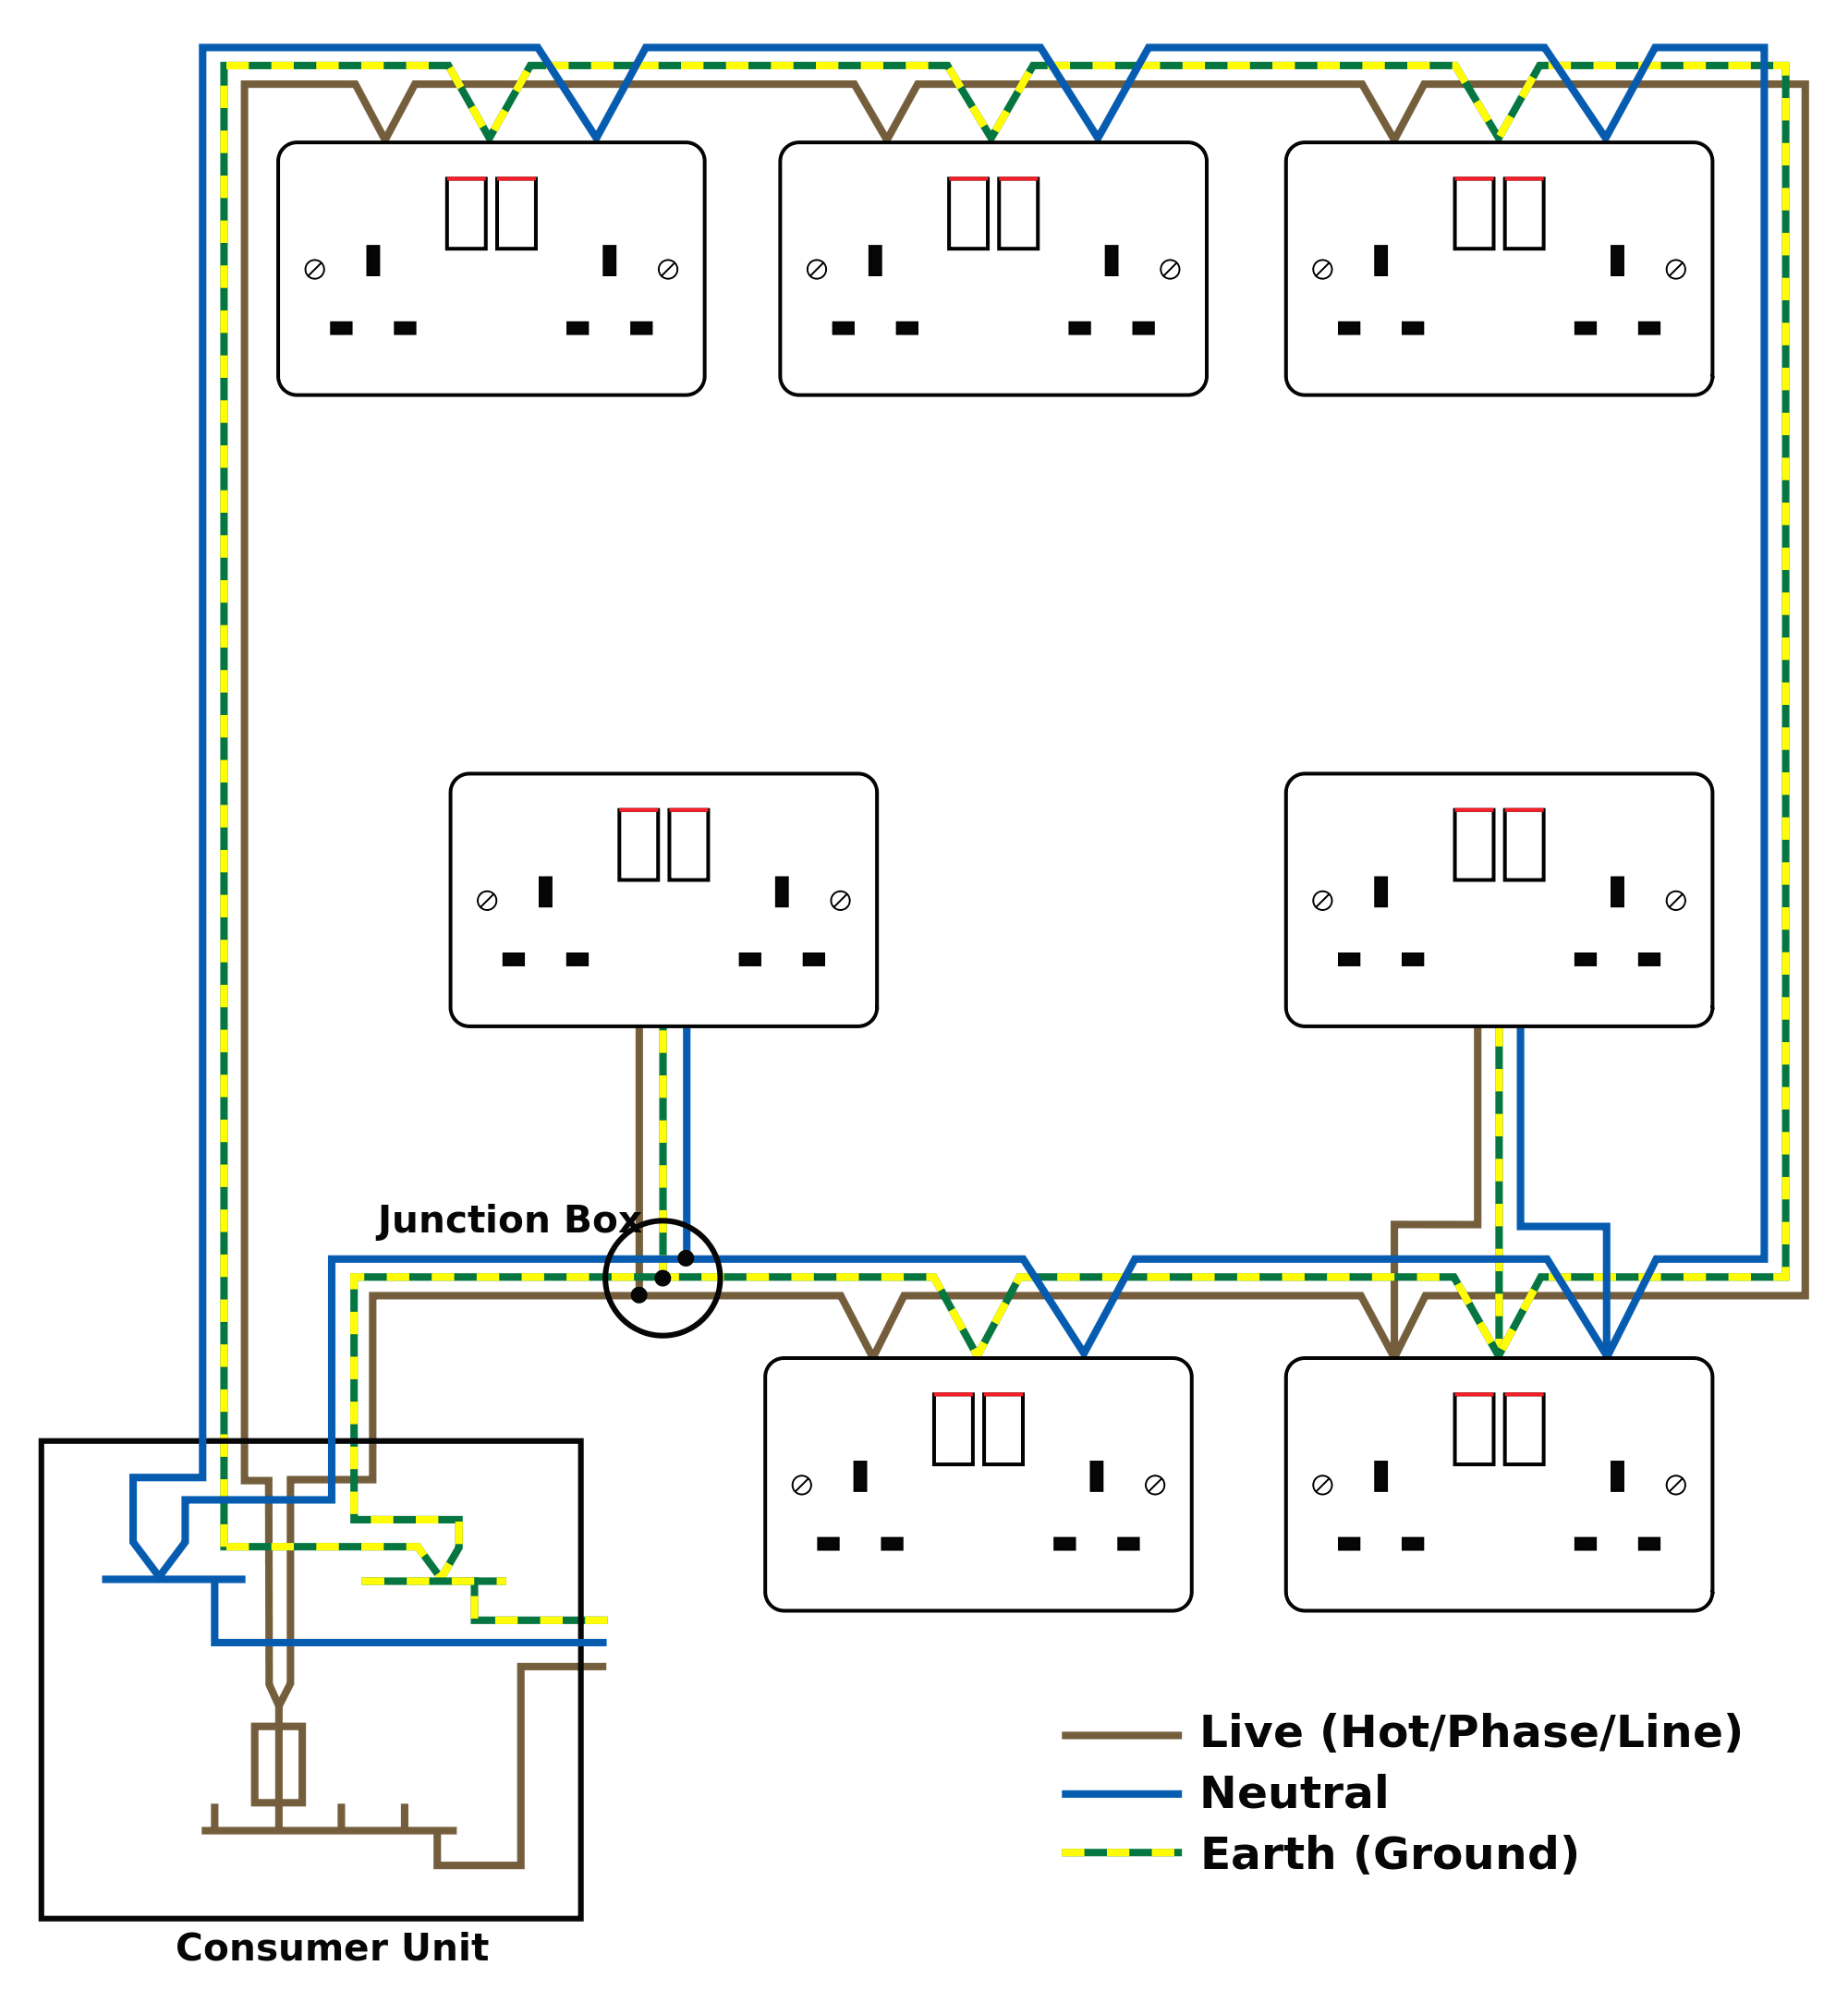 New Wiring Diagram For House Lighting Circuit Pdf Diagram Diagramsample Diagramtemplate Check More At Home Electrical Wiring House Wiring Residential Wiring